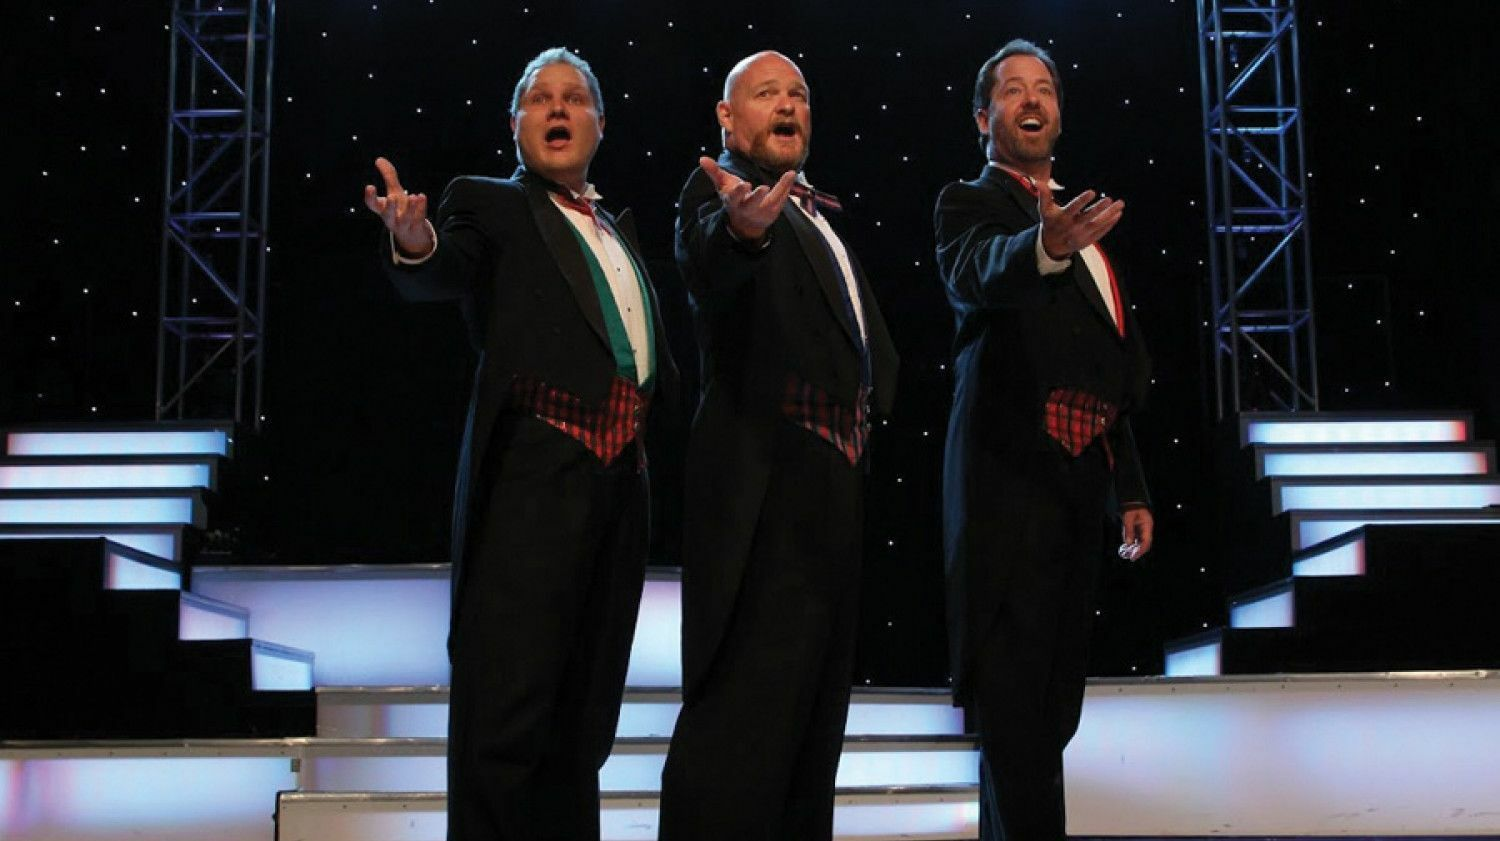 The Tenors of Comedy: Wisecracking Vocal Virtuosos